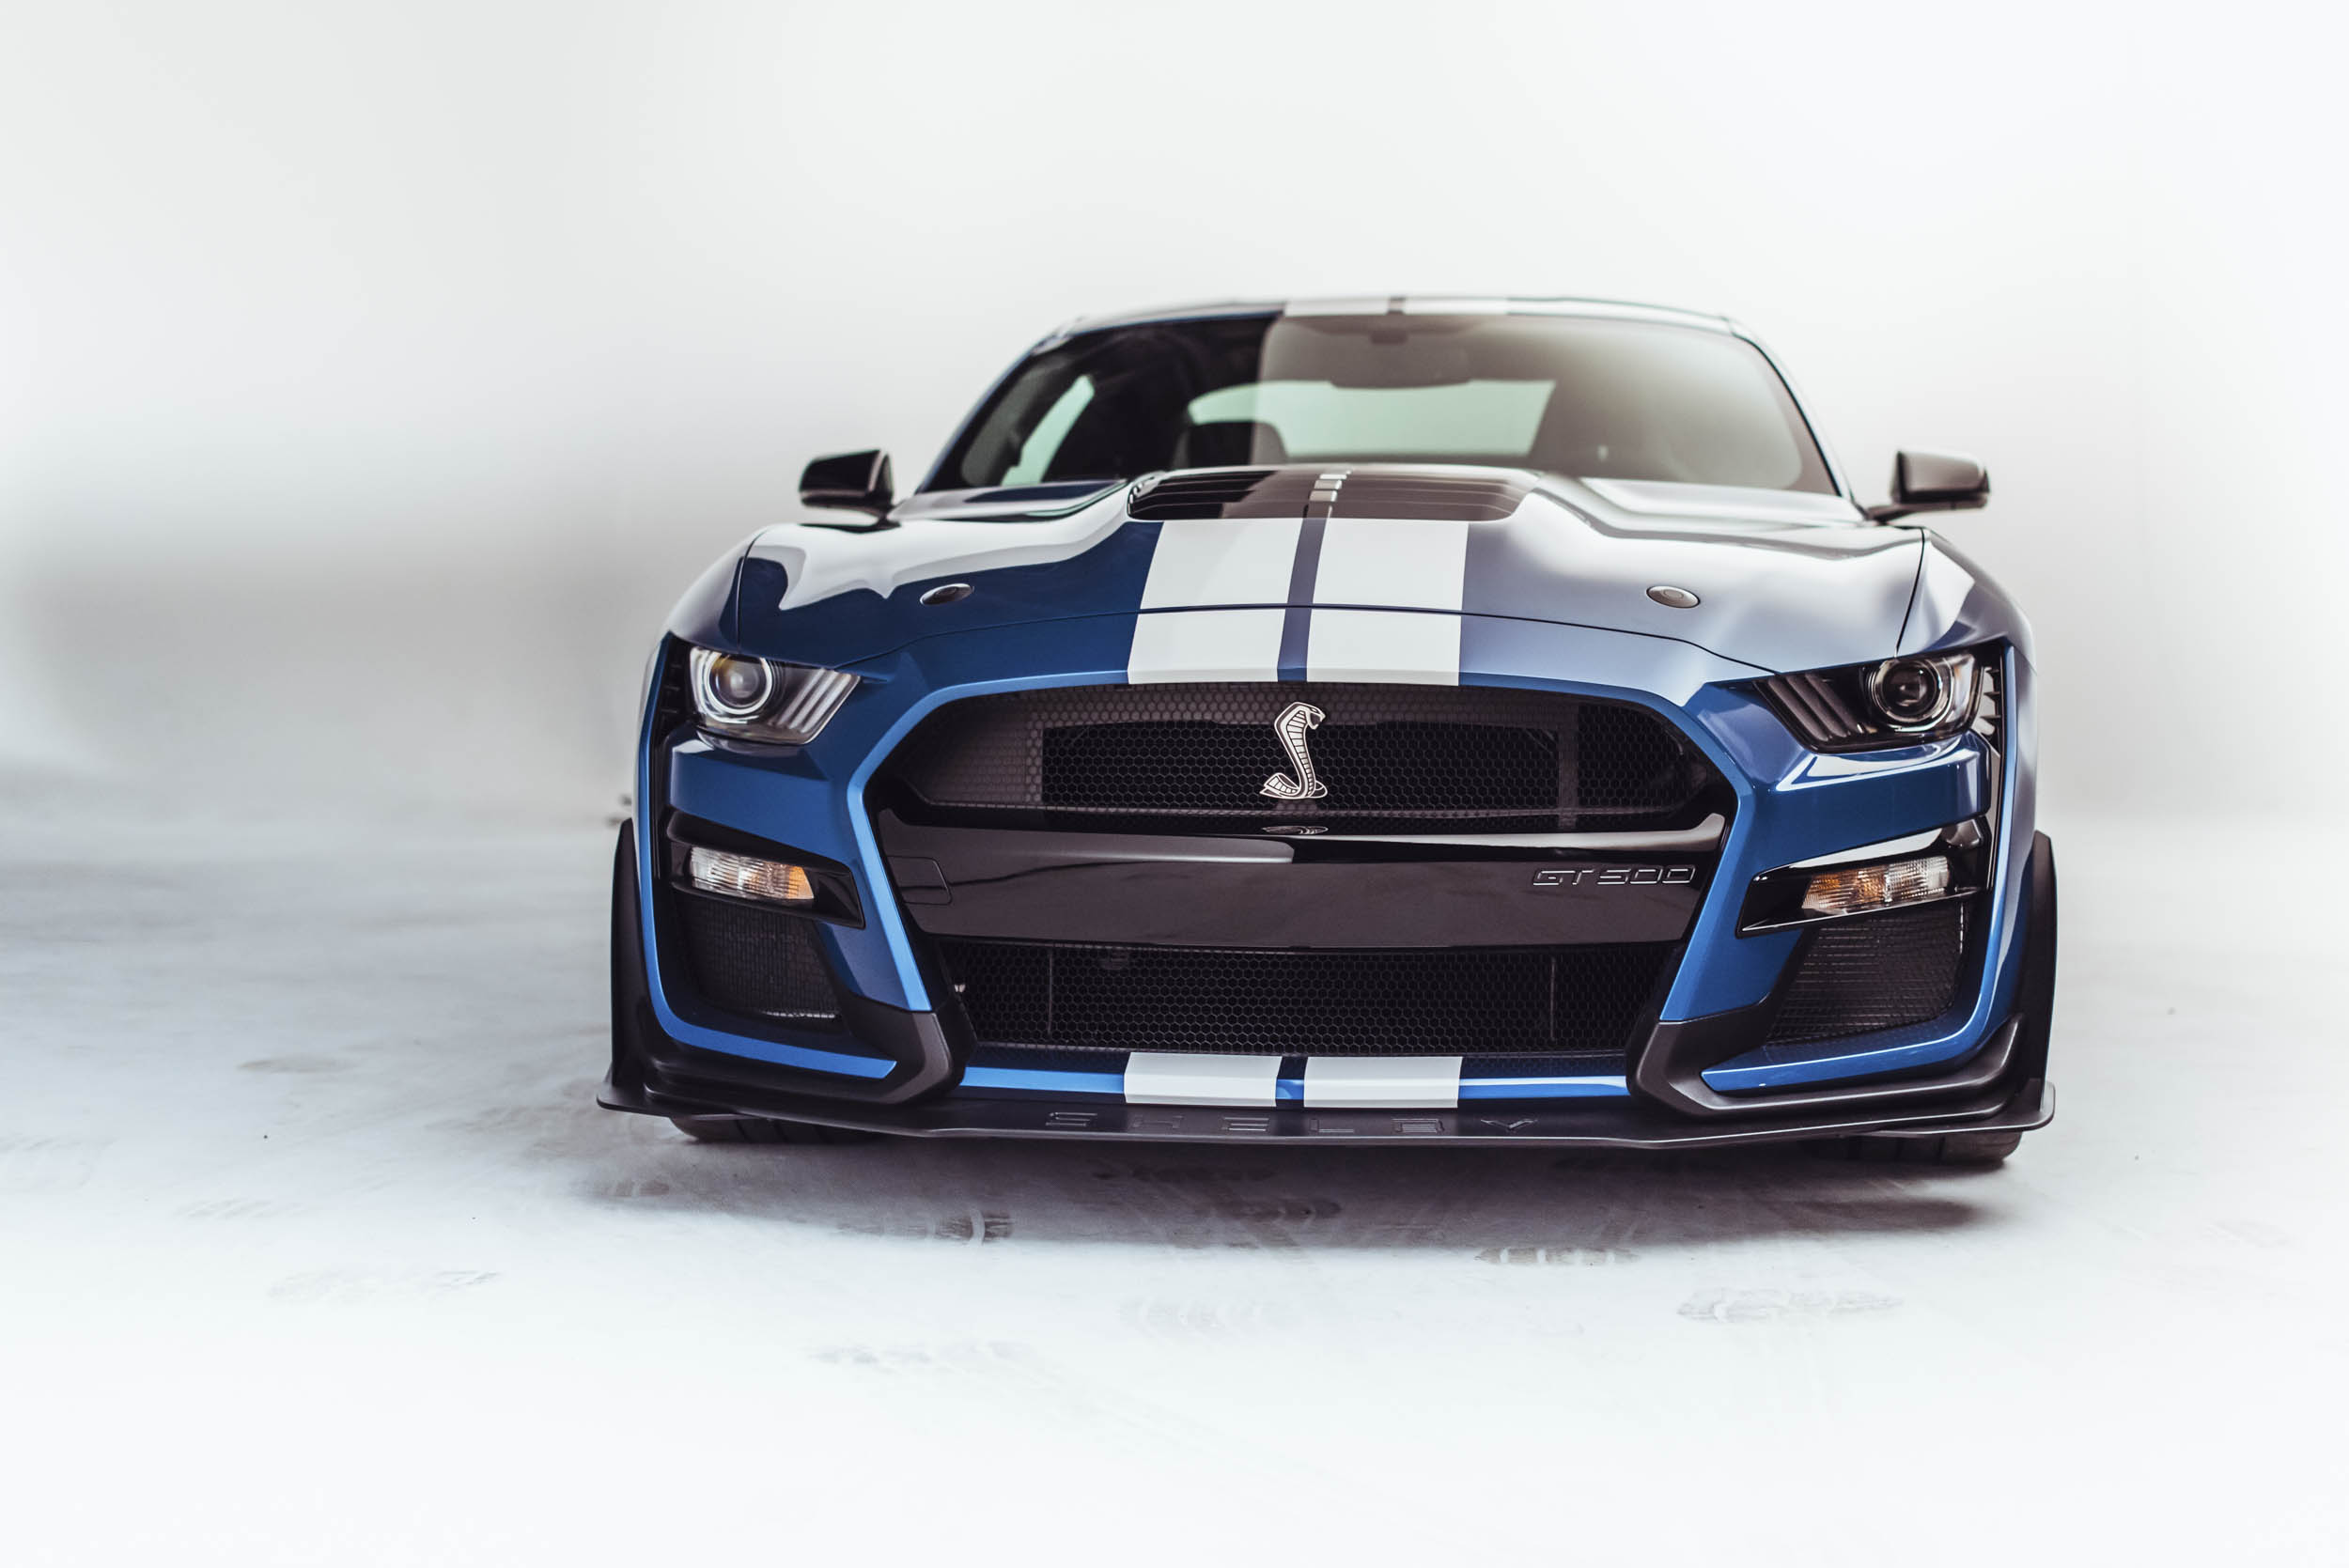 2020 Shelby GT500 front